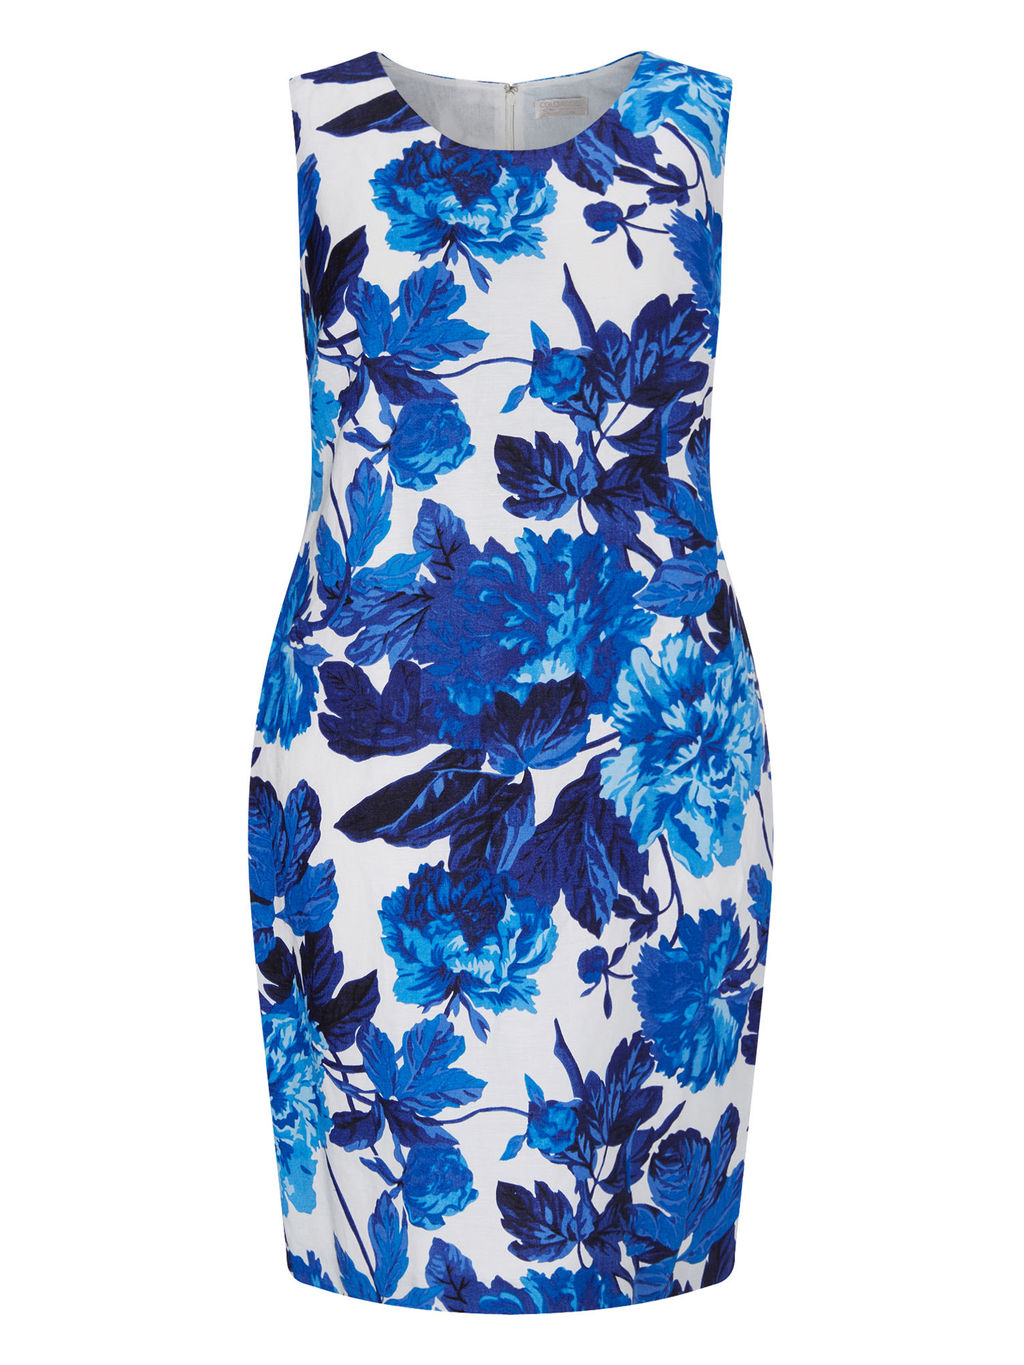 Printed Linen Dress - style: shift; length: mid thigh; sleeve style: sleeveless; secondary colour: white; predominant colour: royal blue; occasions: evening; fit: body skimming; fibres: linen - 100%; neckline: crew; sleeve length: sleeveless; texture group: linen; pattern type: fabric; pattern size: big & busy; pattern: florals; multicoloured: multicoloured; season: s/s 2016; wardrobe: event